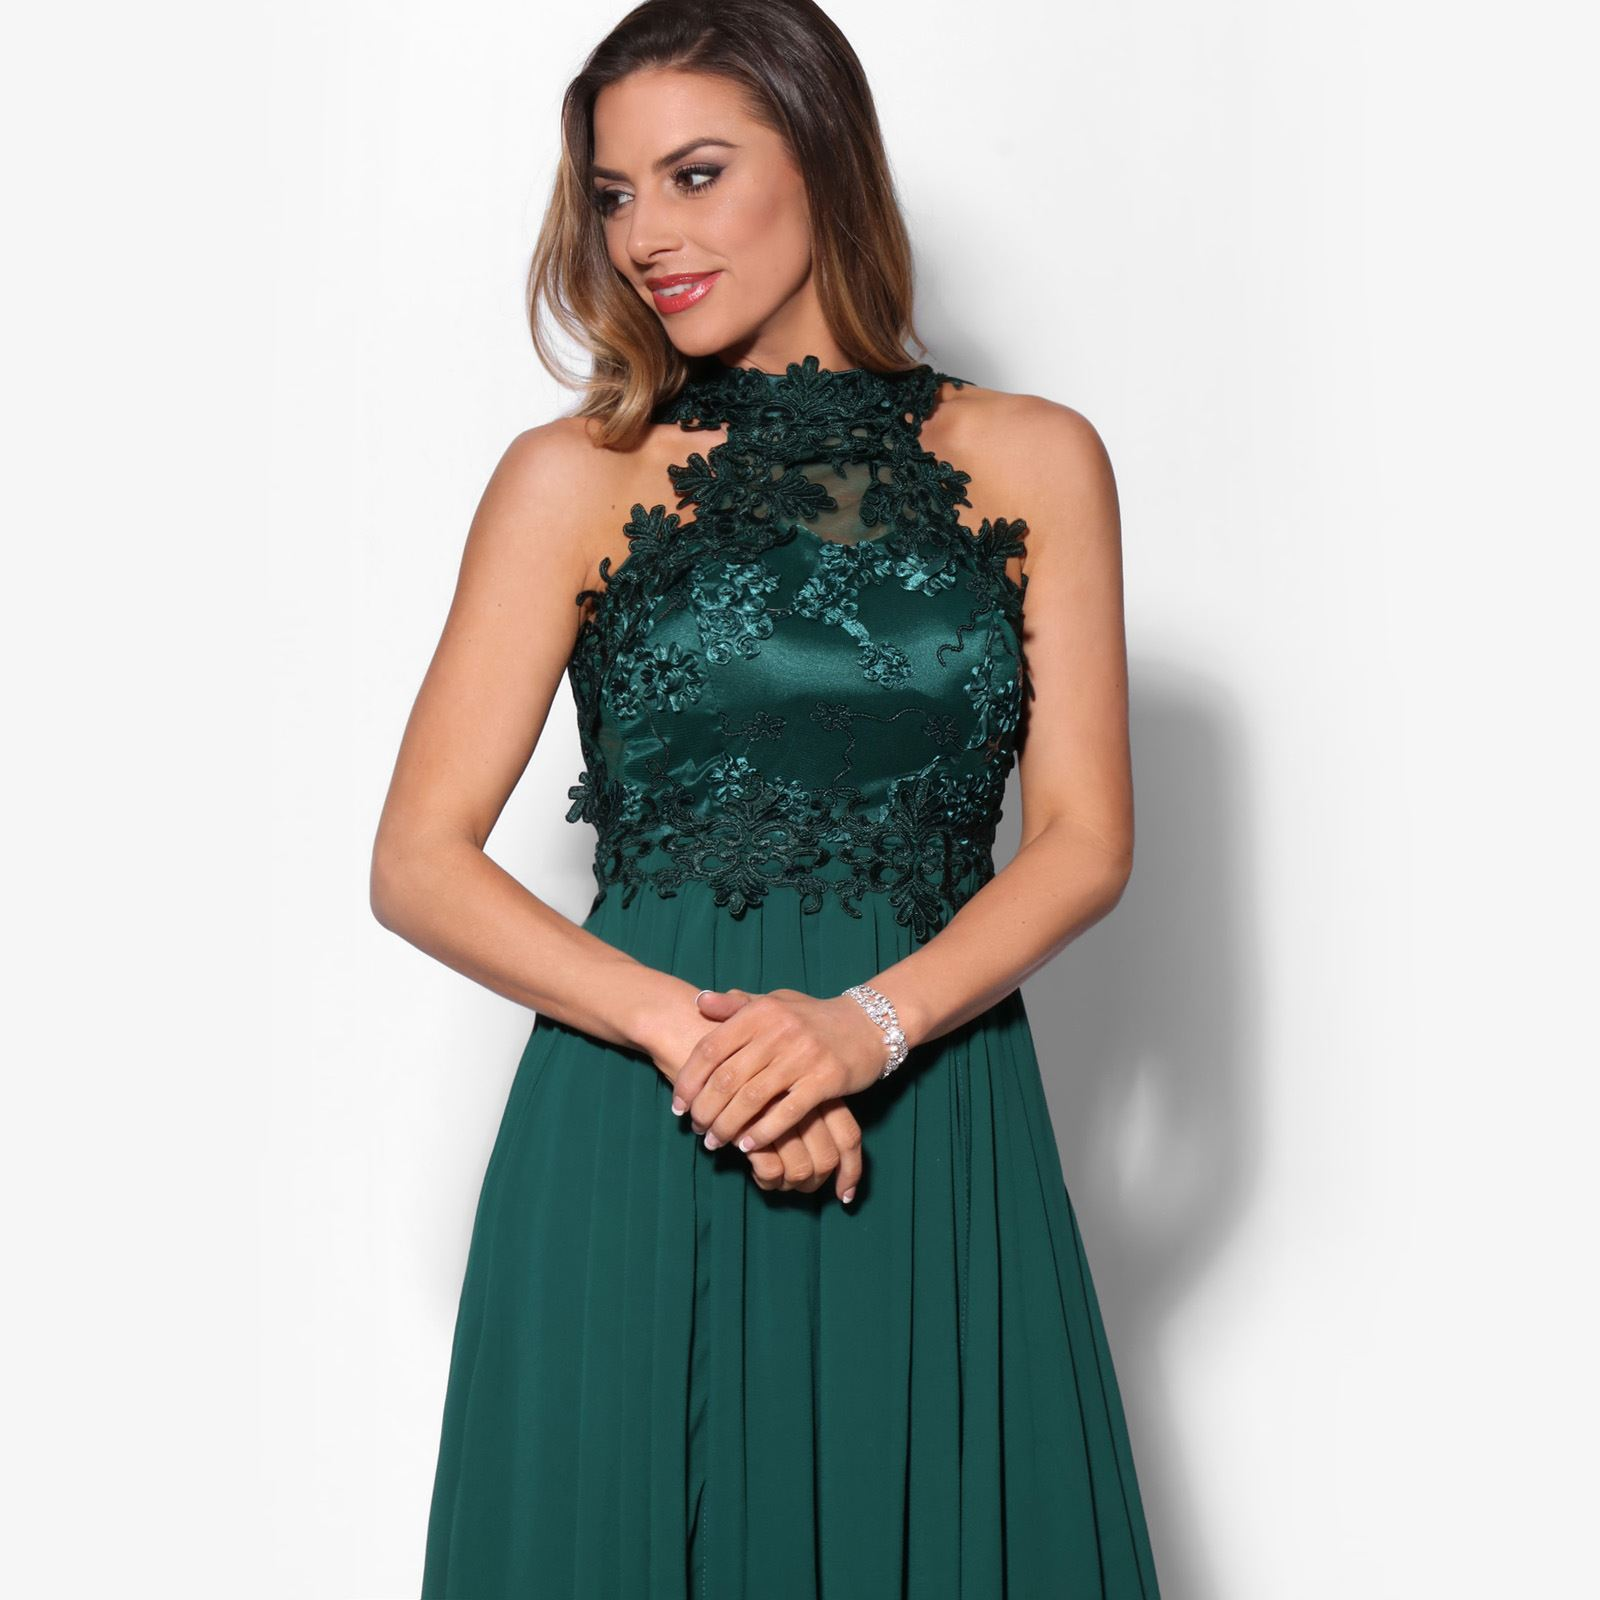 Women-Lace-Halterneck-Maxi-Dress-Long-Evening-Cocktail-Ball-Gown-Formal-Party thumbnail 4